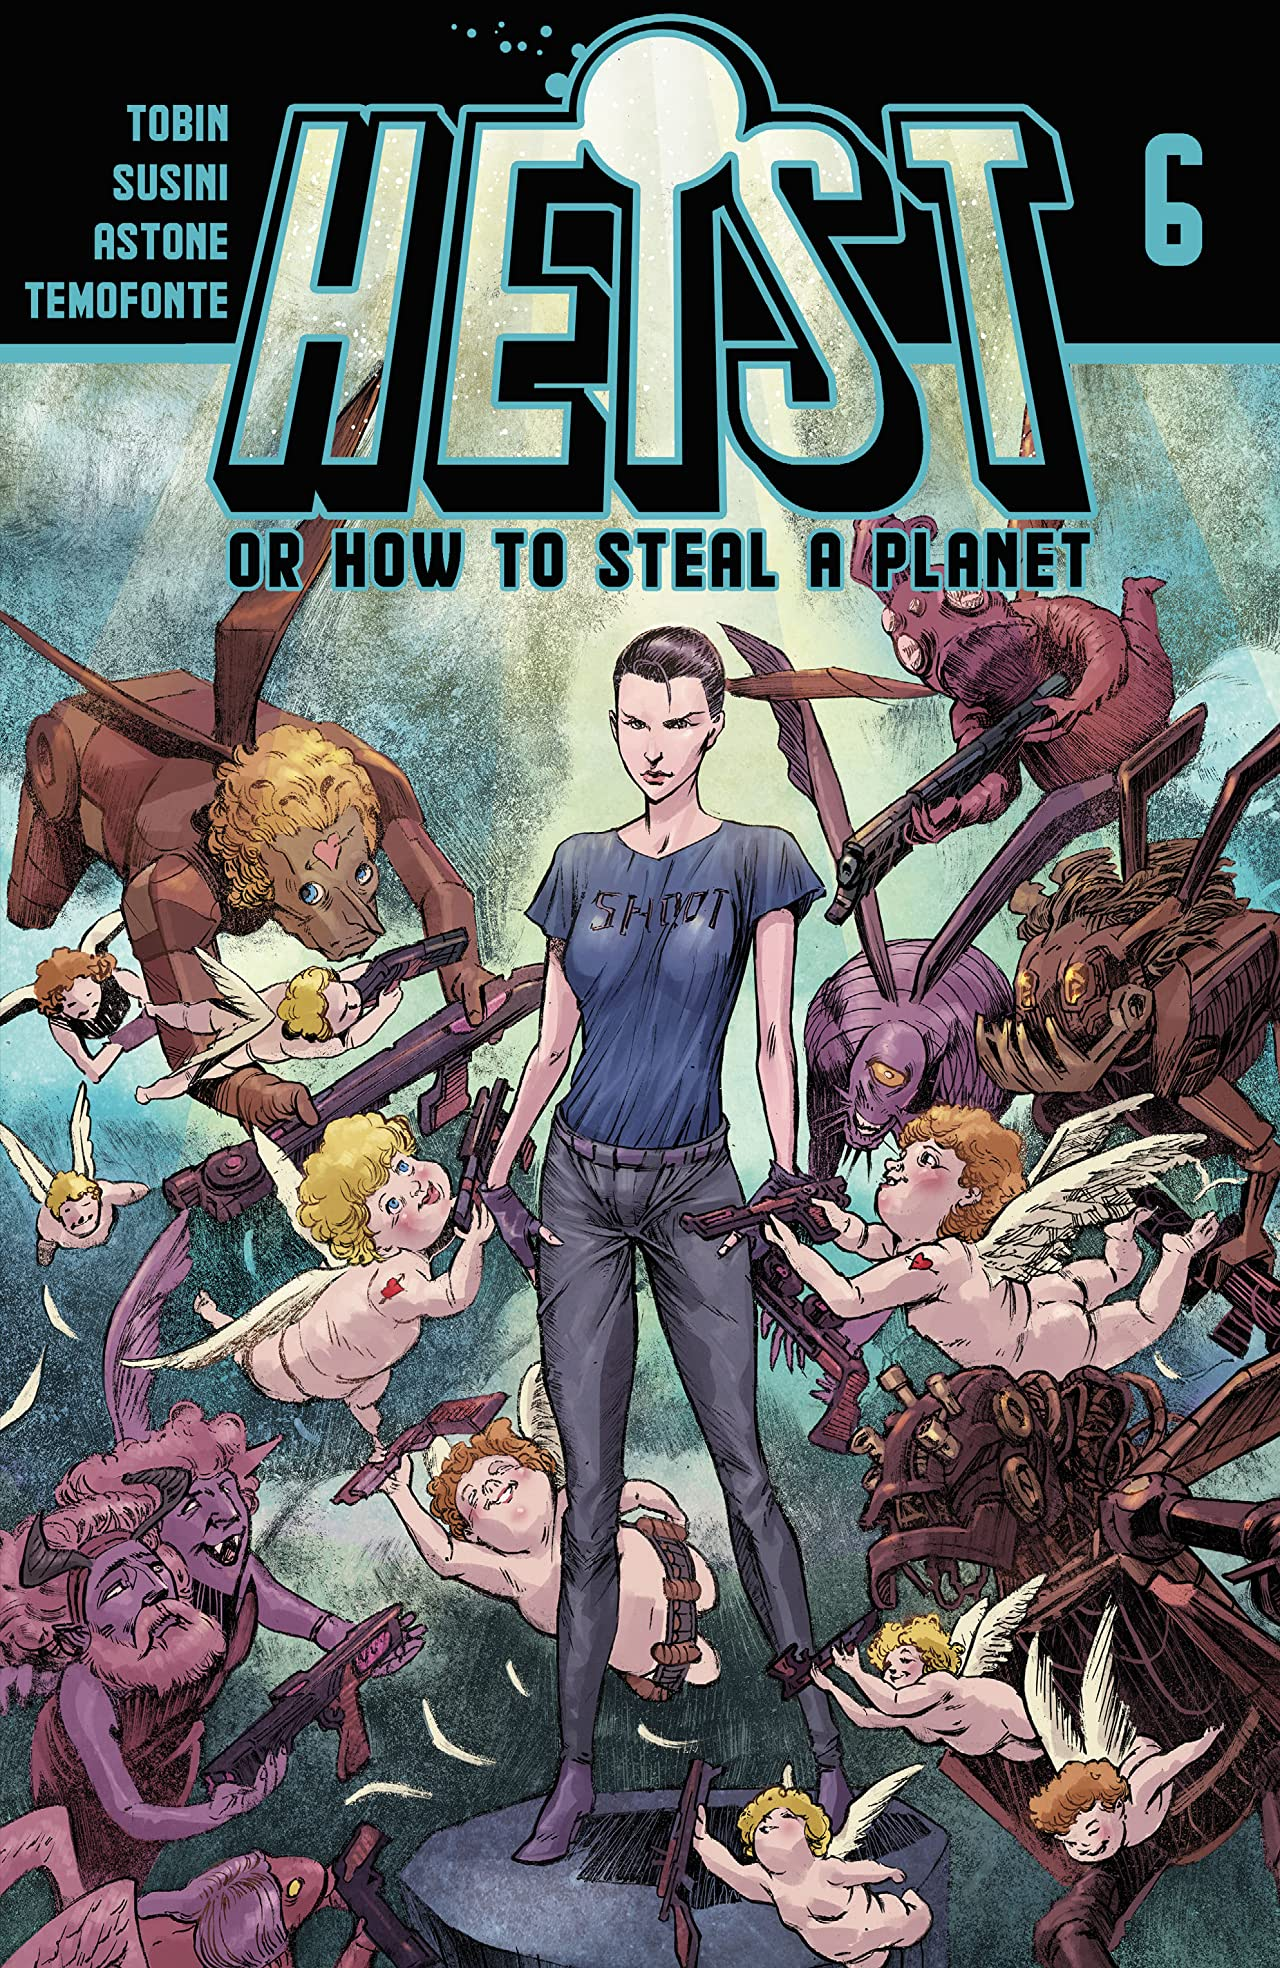 Heist: Or How to Steal A Planet #6